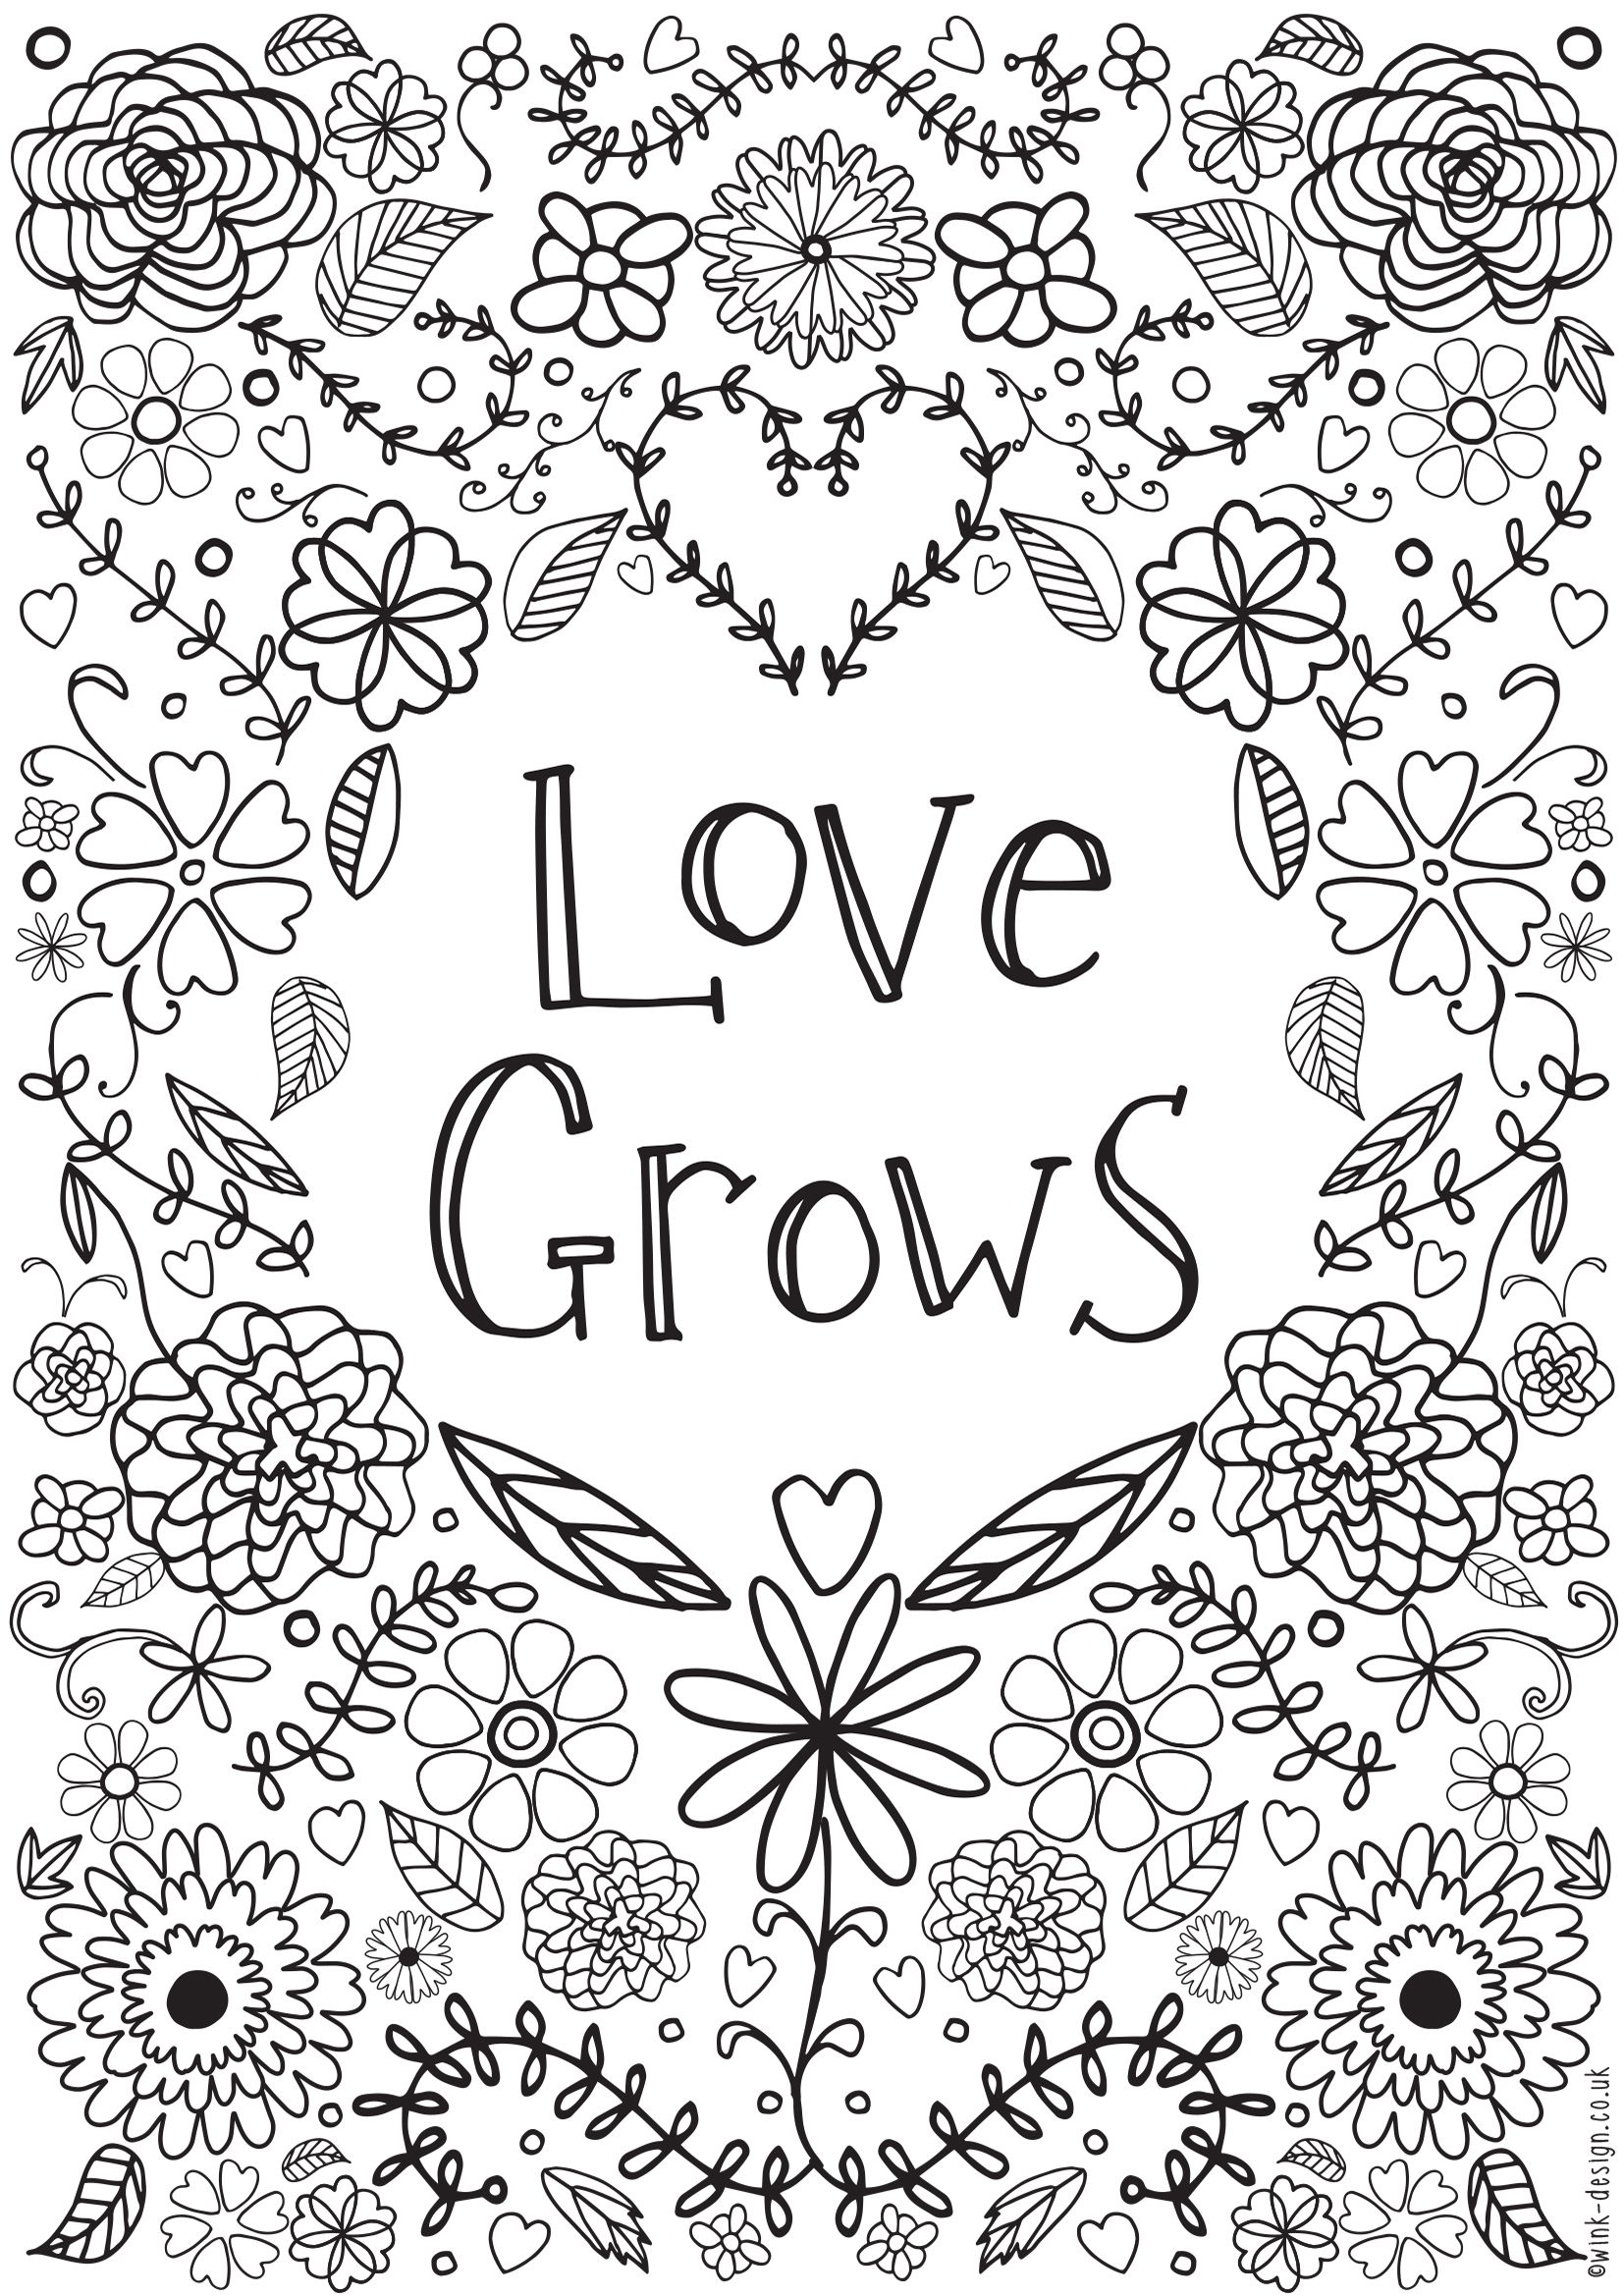 free printable adult colouring sheet with inspirational quote - Free Inspirational Coloring Pages For Adults